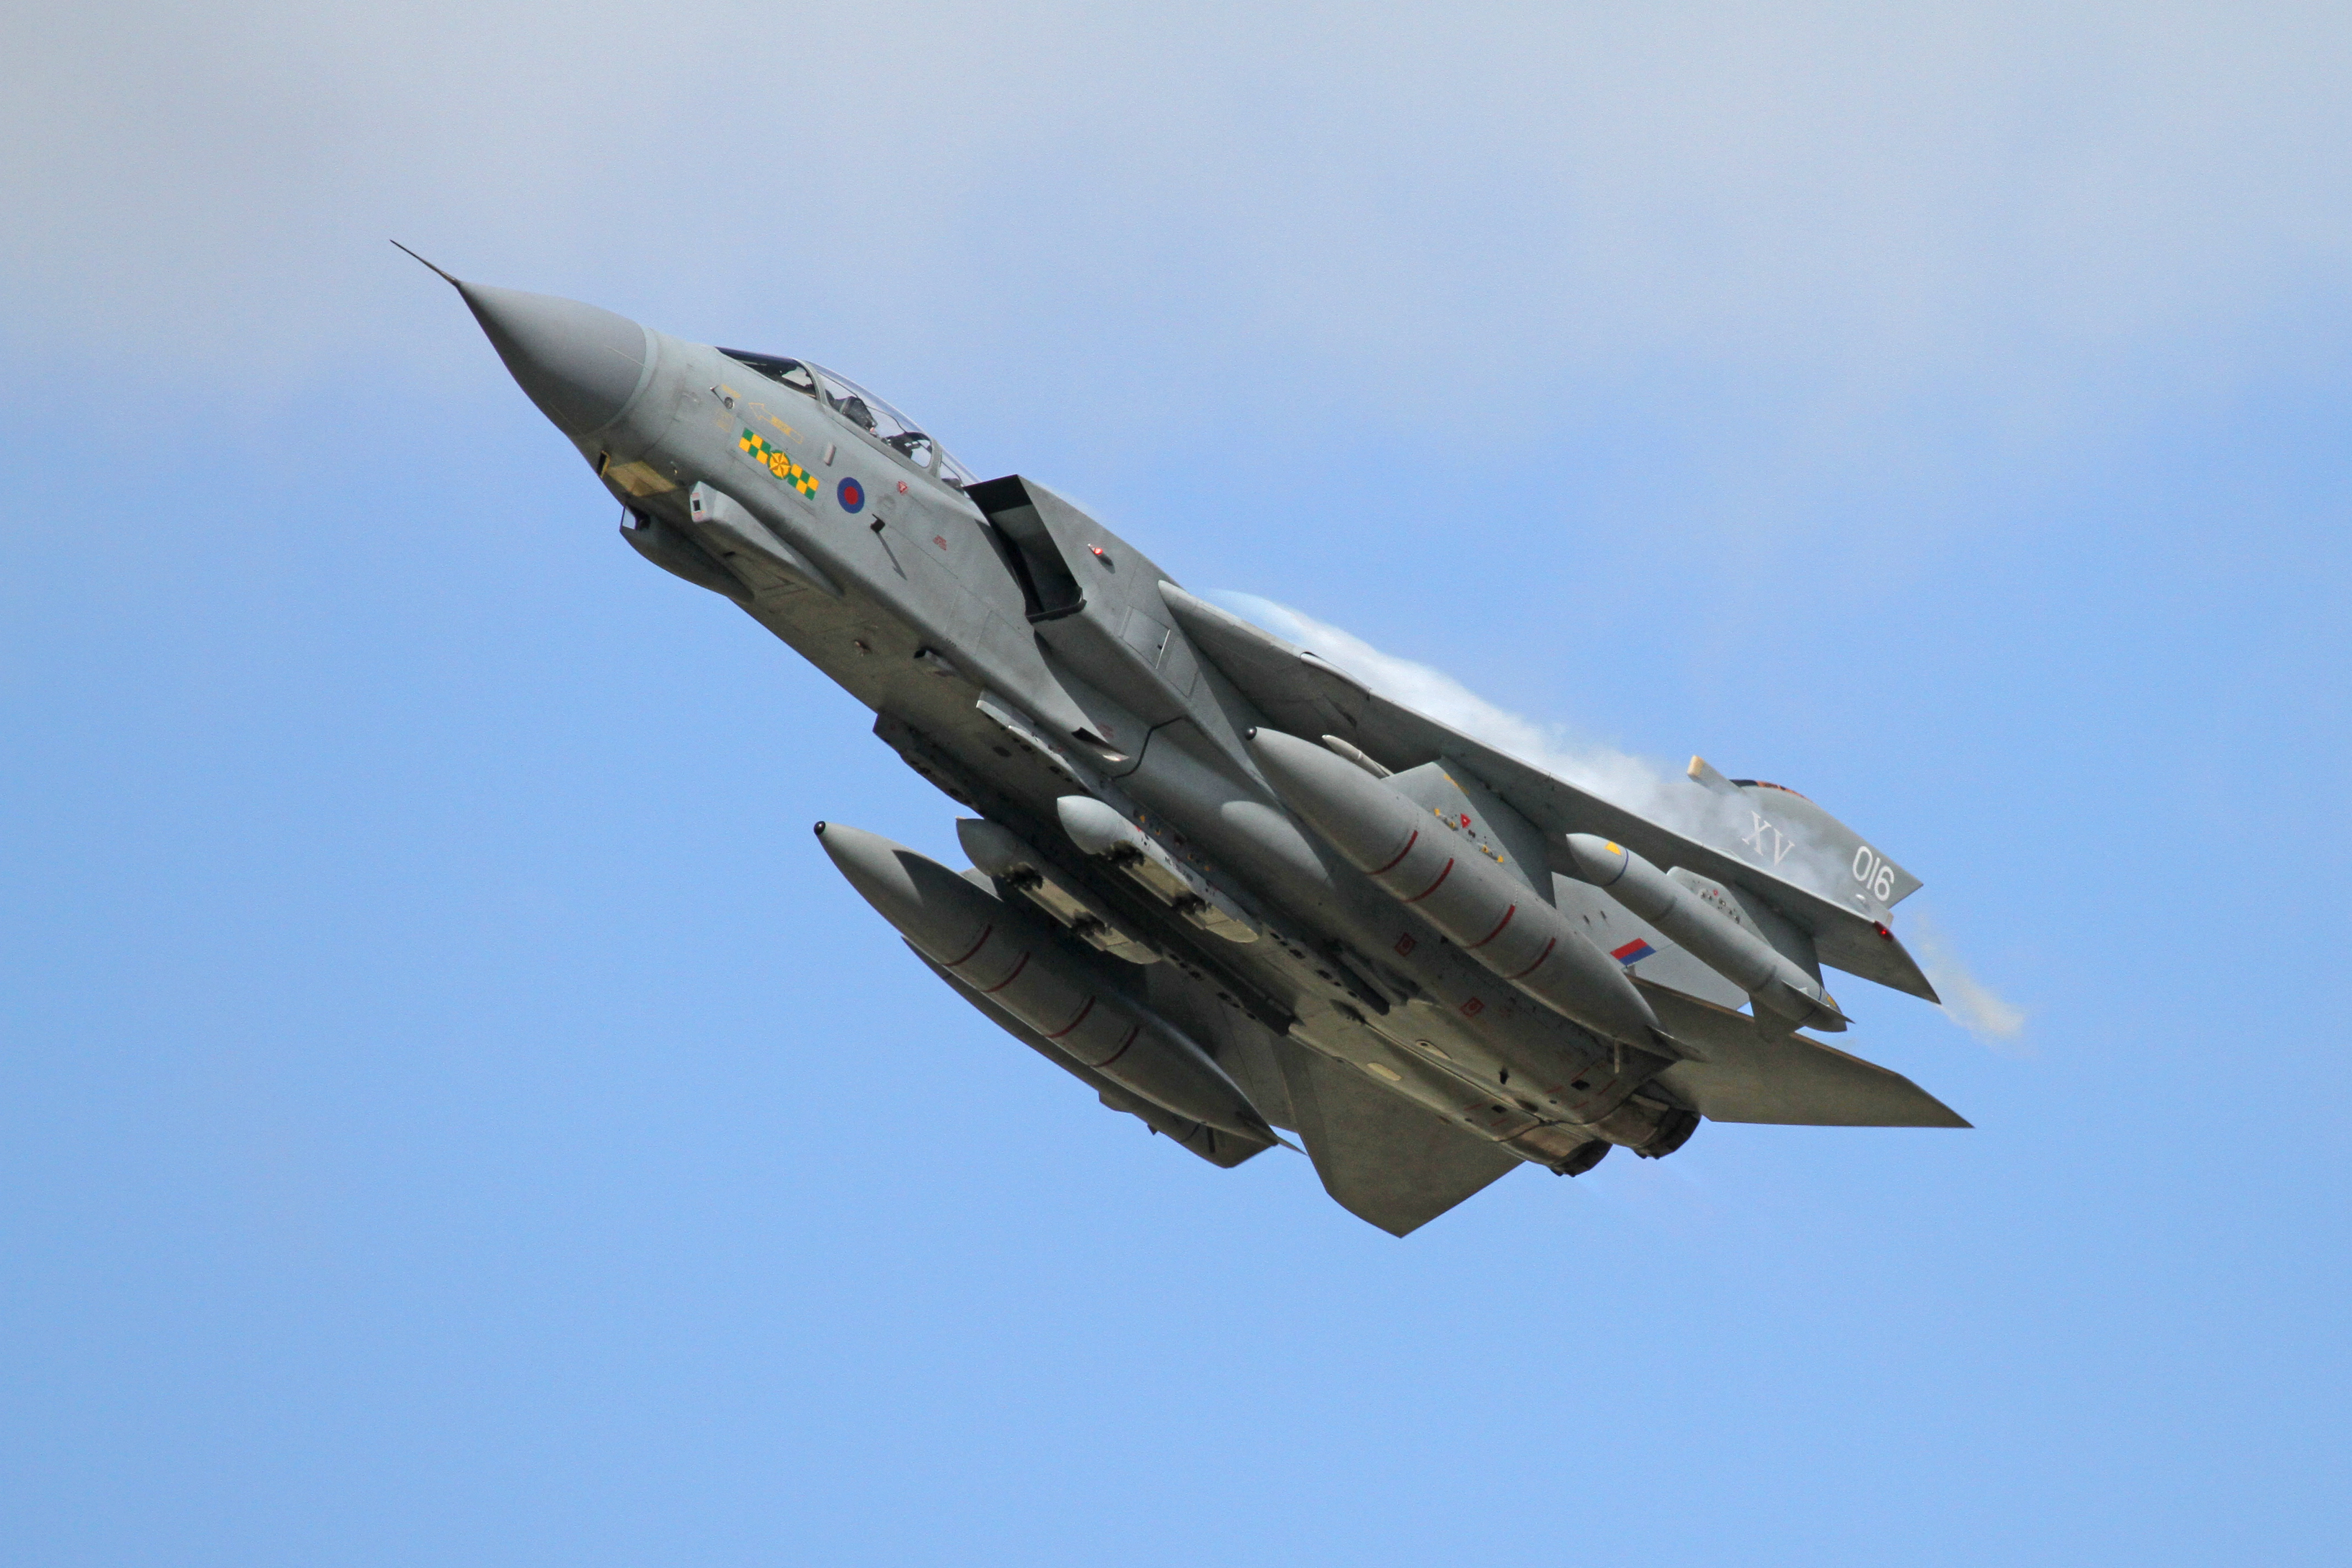 Panavia Tornado Pictures to Pin on Pinterest - PinsDaddy